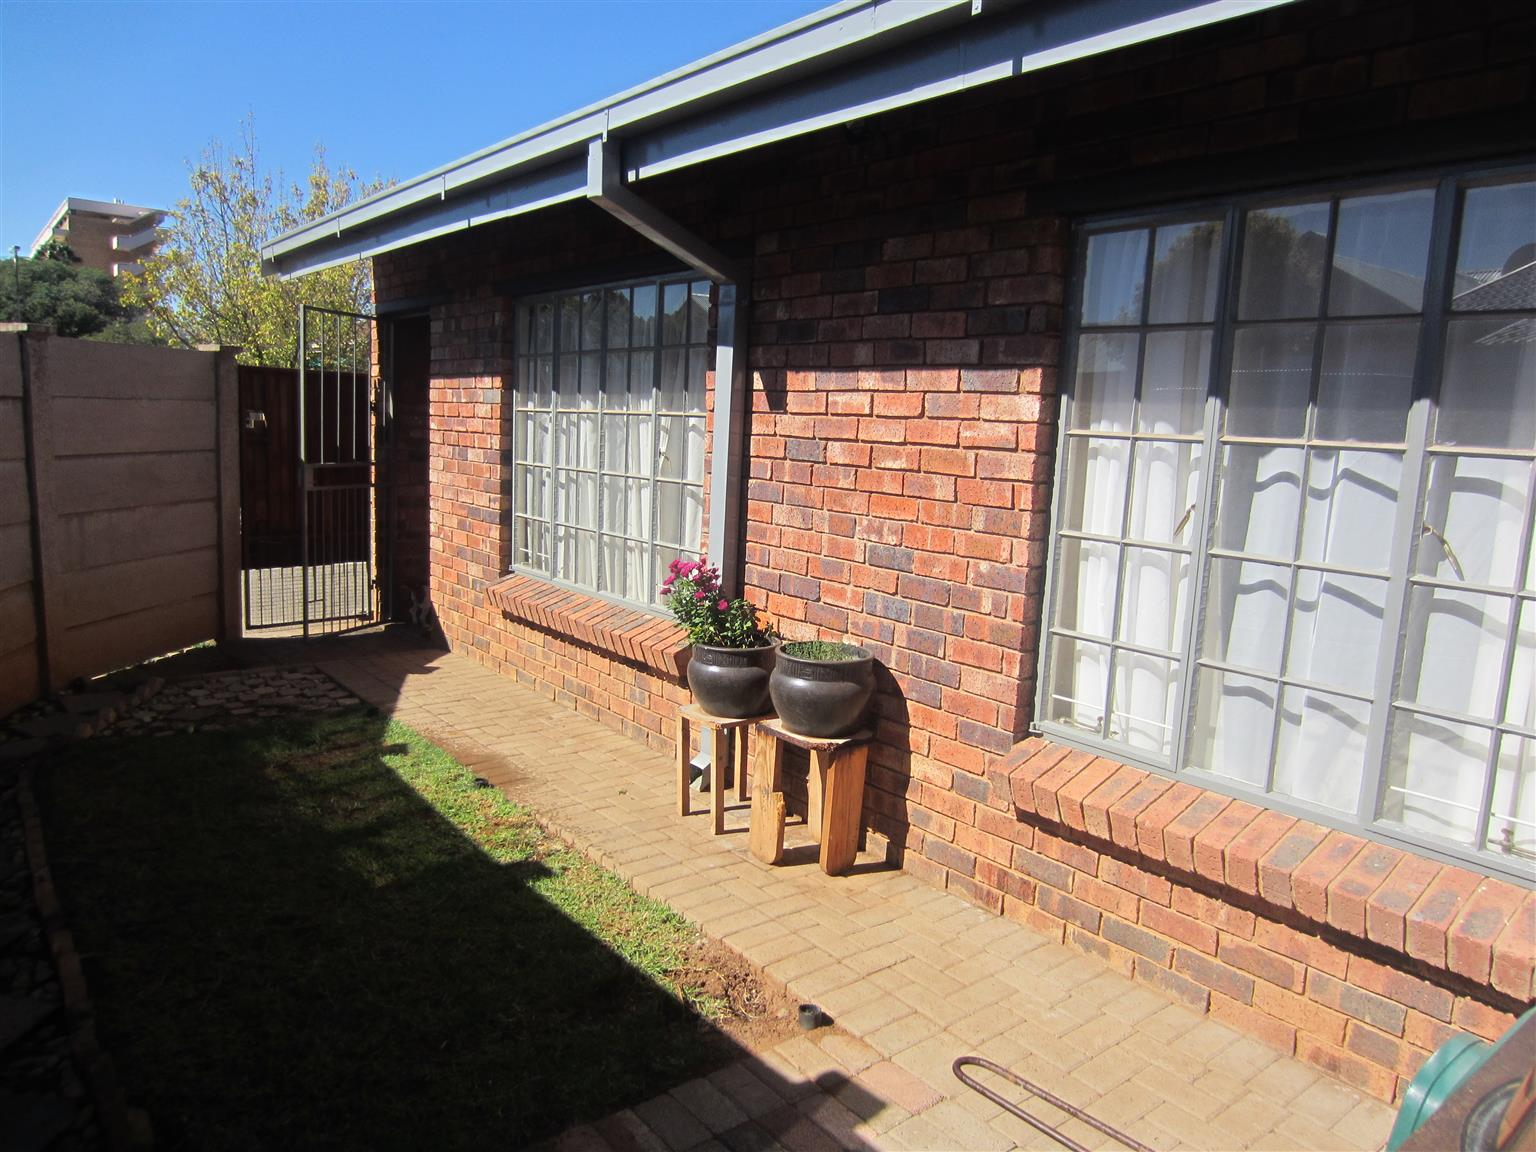 2-Bedroom Townhouse in Willows